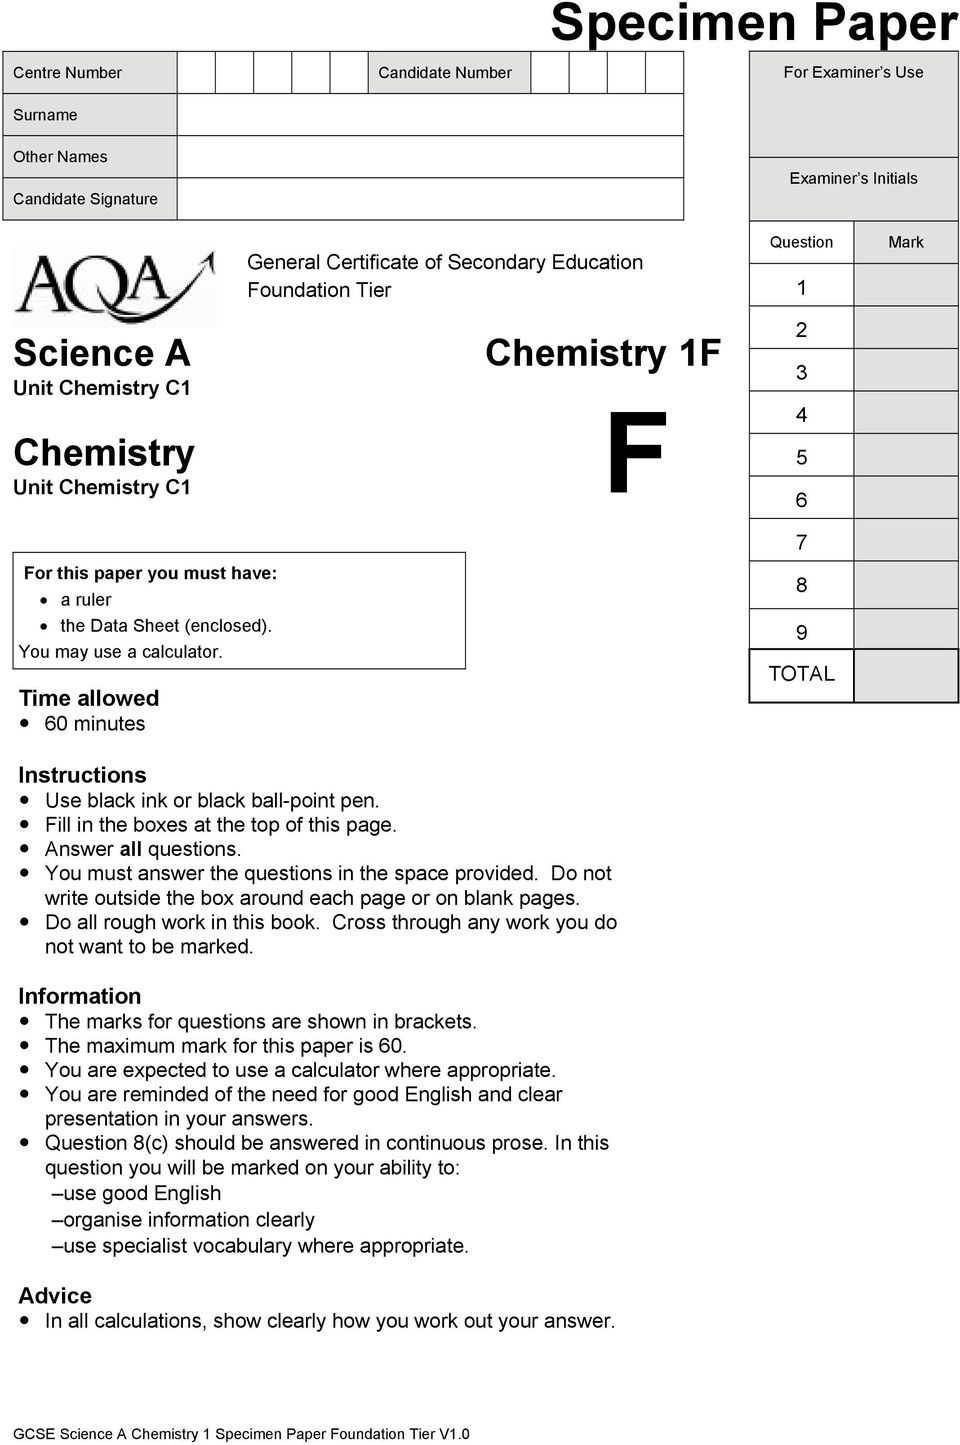 60 minutes Chemistry 1F F 2 3 4 5 6 7 8 9 TOTAL Instructions! Use black ink or black ball-point pen.! Fill in the es at the top of this page.! Answer all questions.